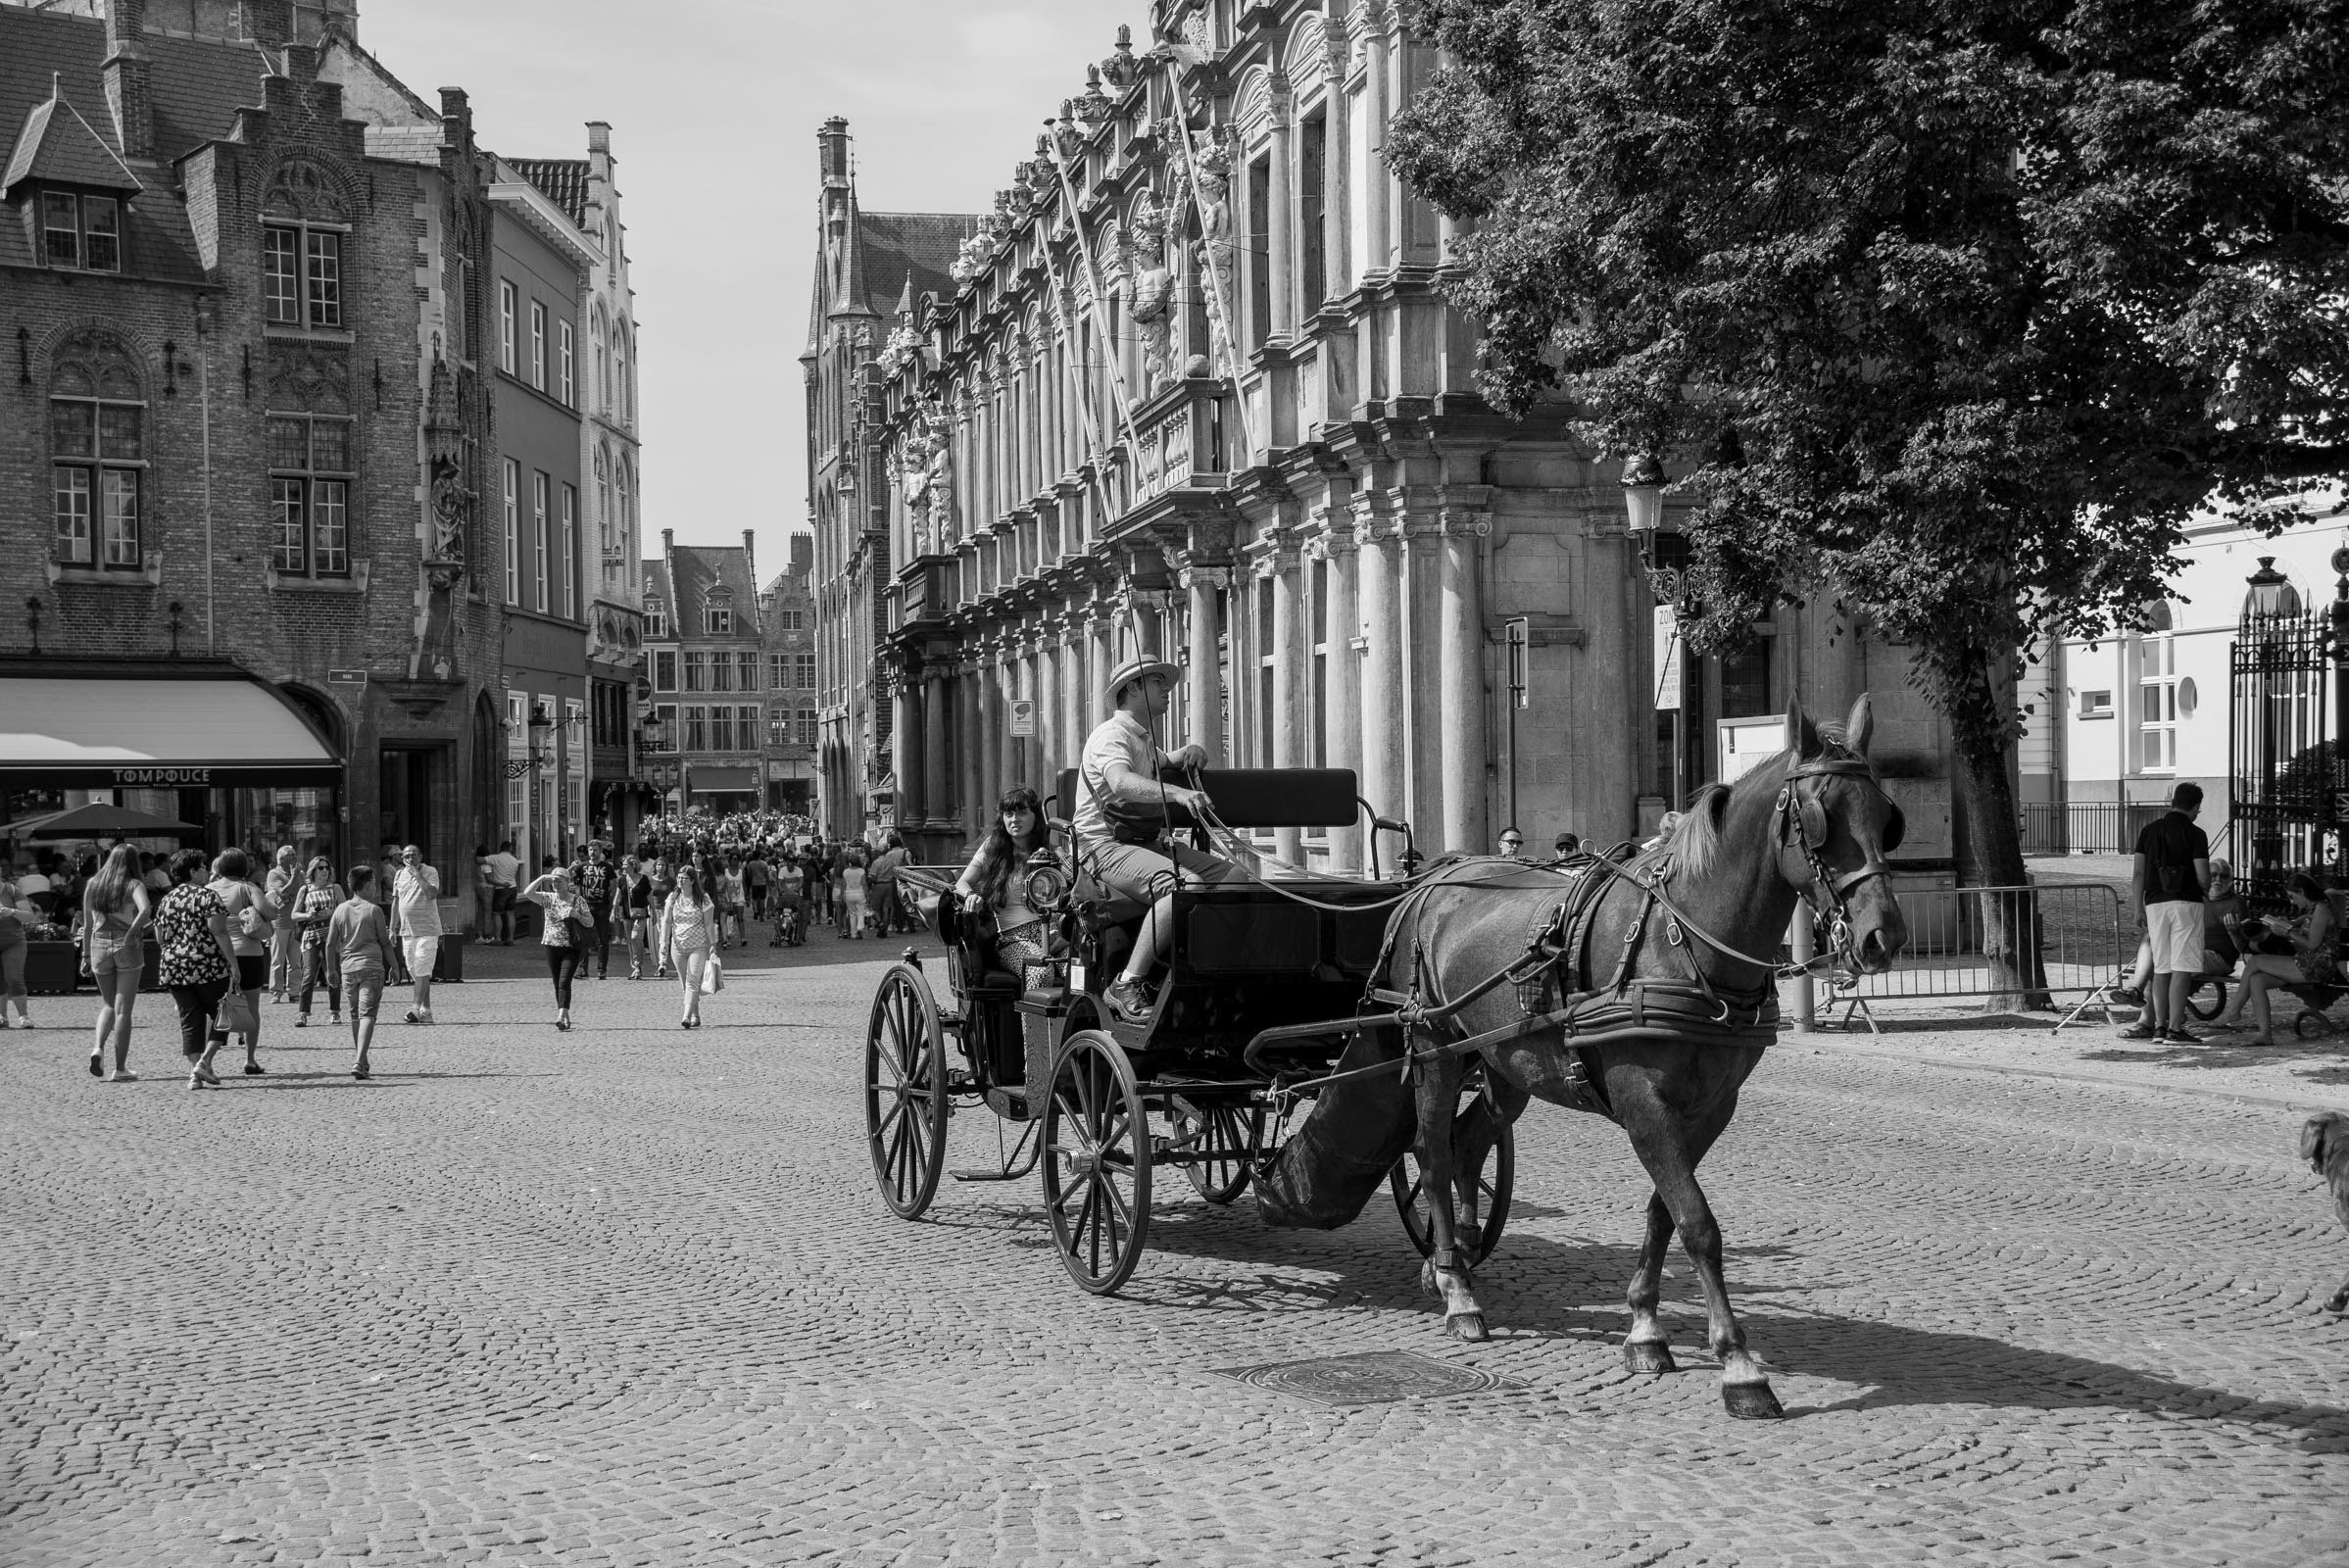 Horse and Cart - A Travel Guide to Bruges, Belgium